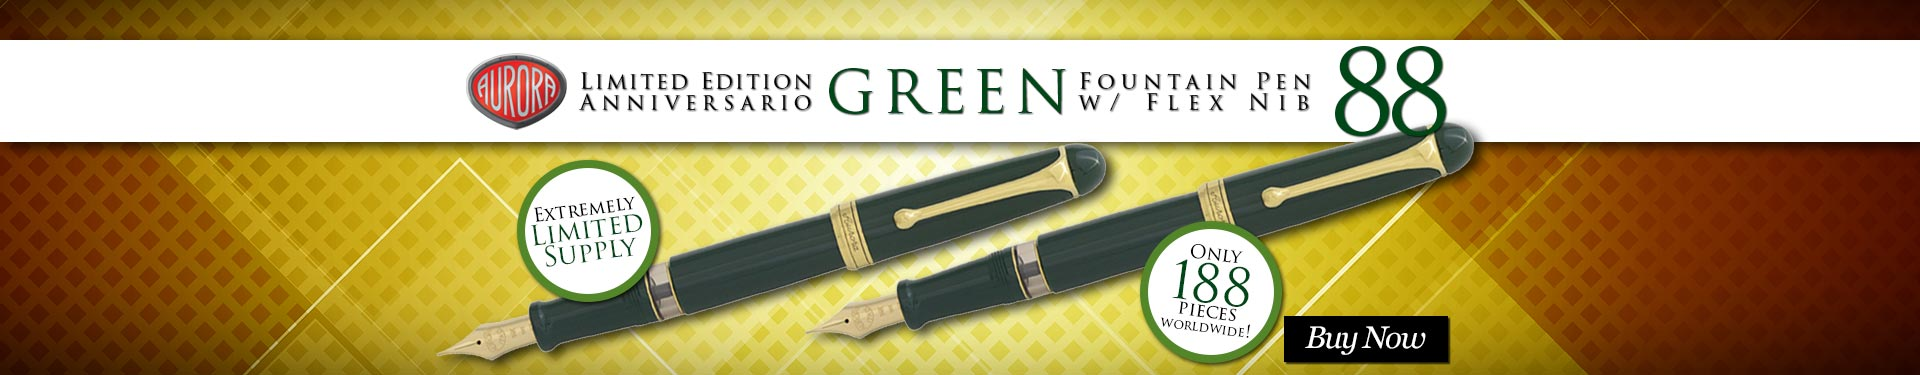 Aurora Limited Edition 88 Anniversario Fountain Pen w/ Flex Nib - Green